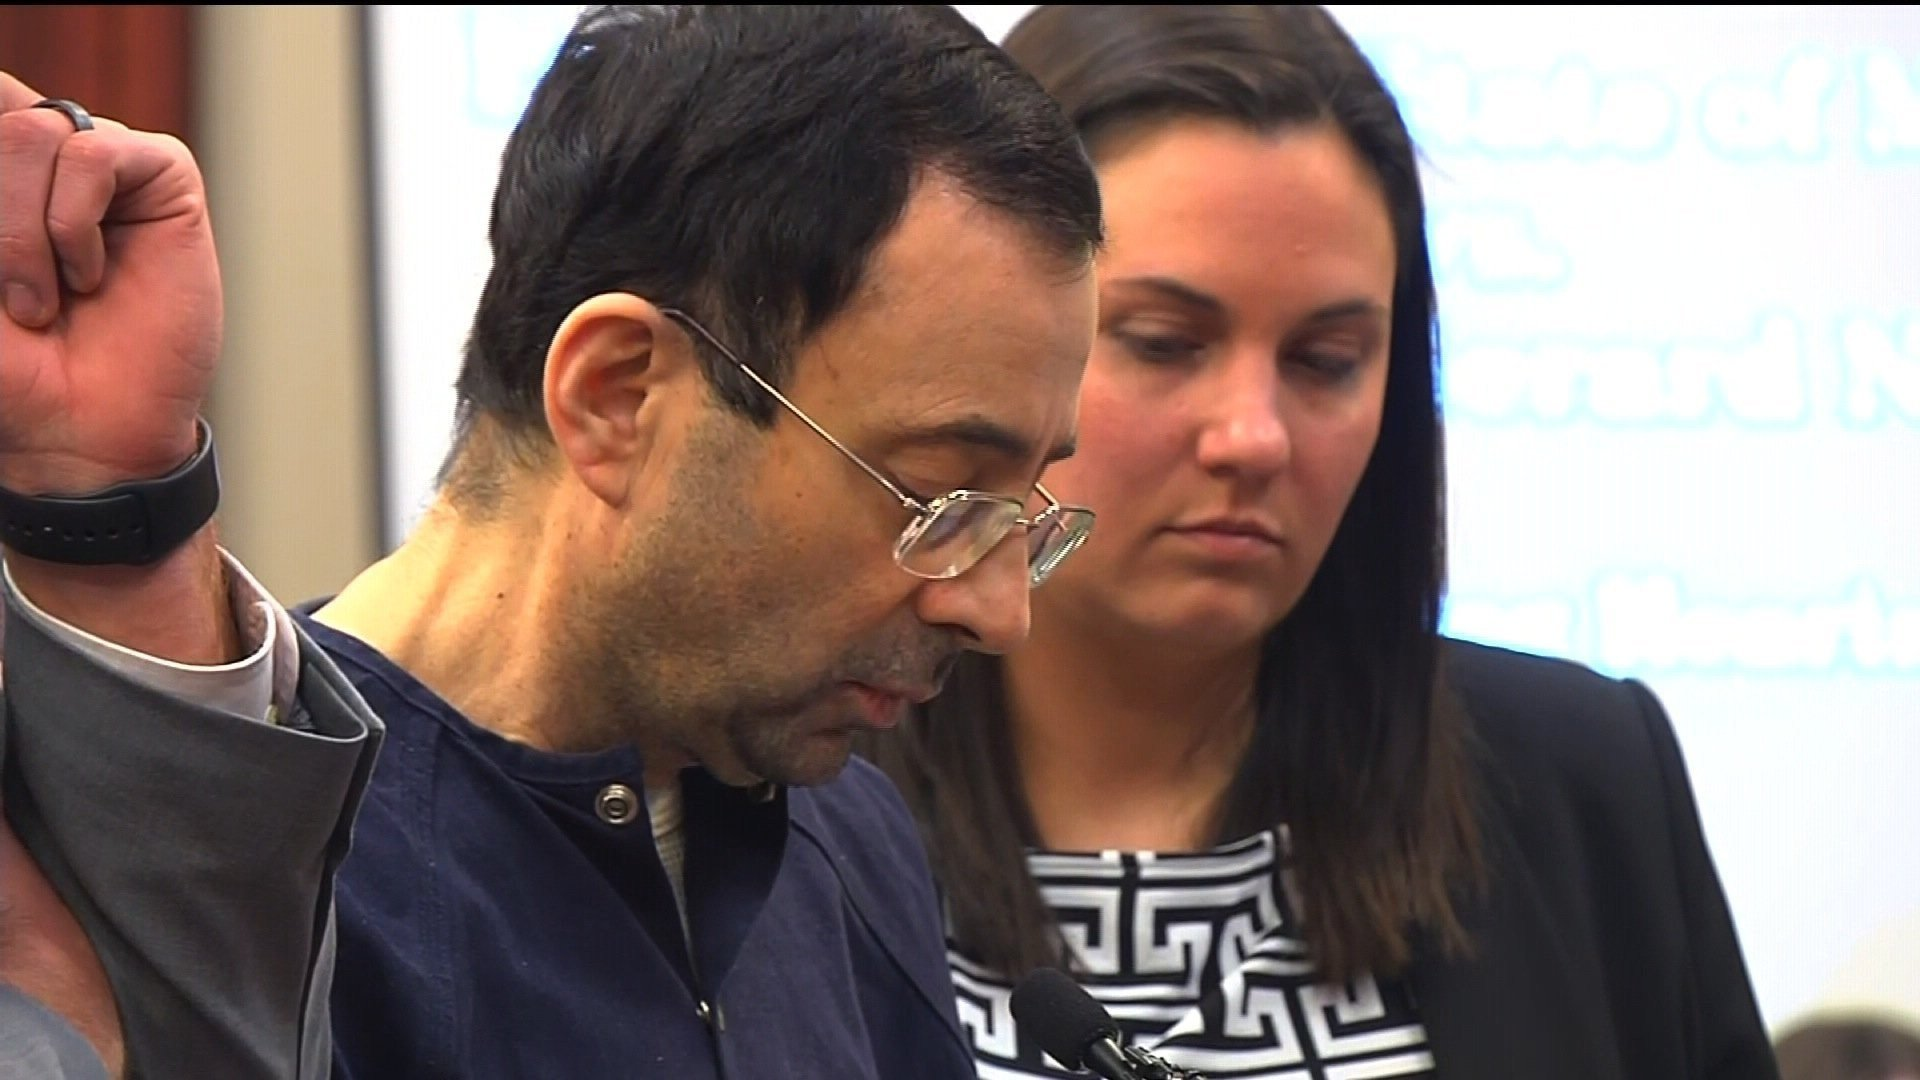 Victims' father lunges at Larry Nassar during hearing